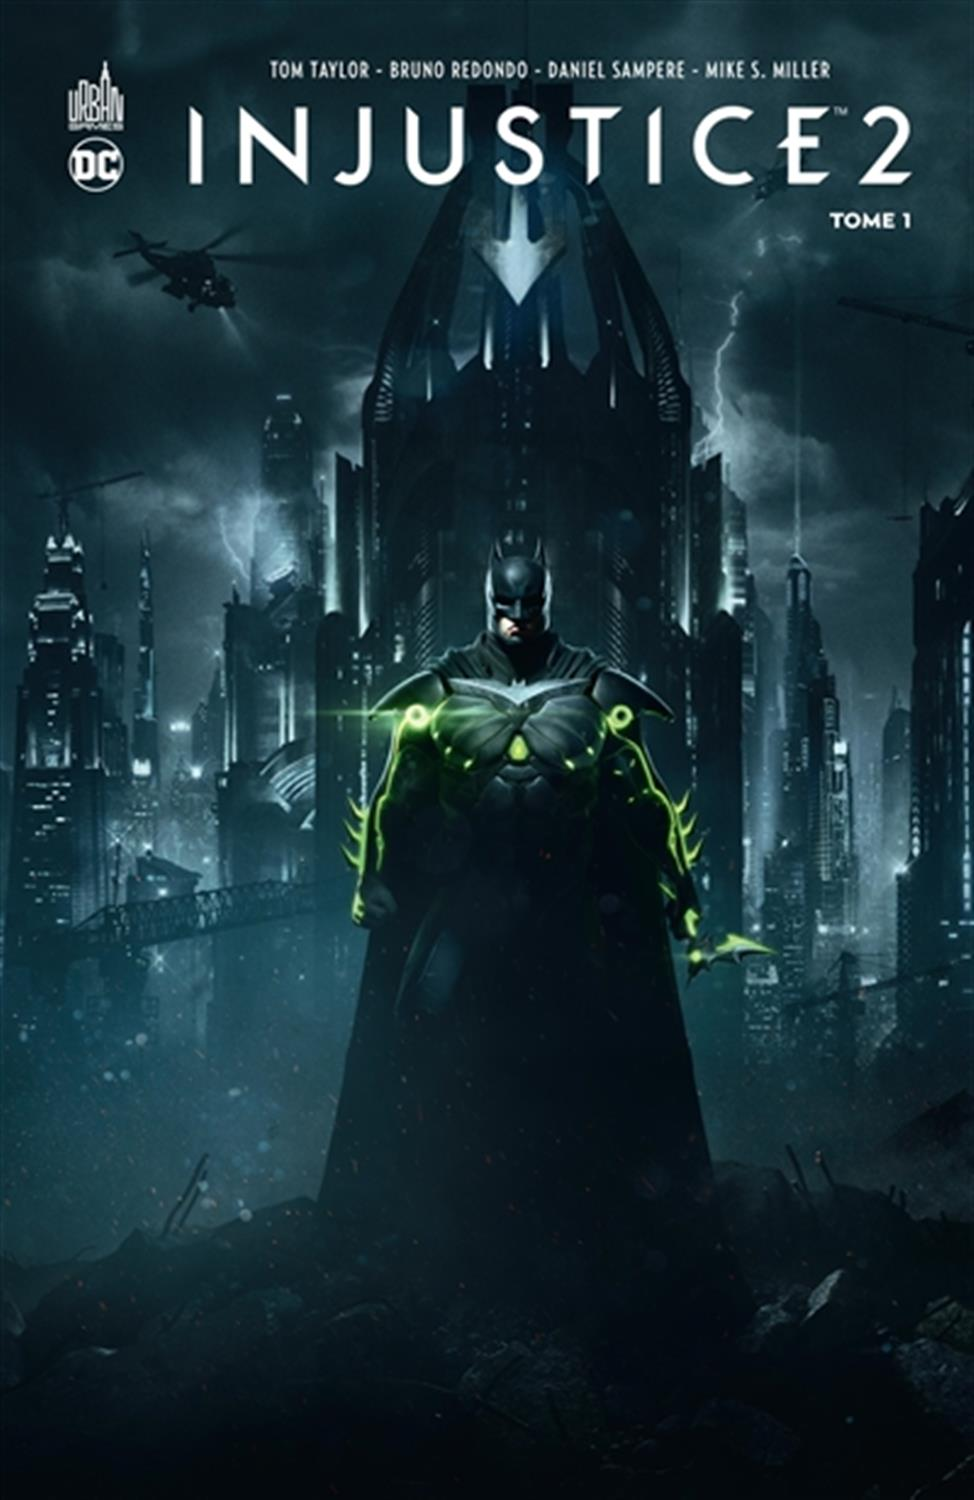 Injustice 2 Tome 1